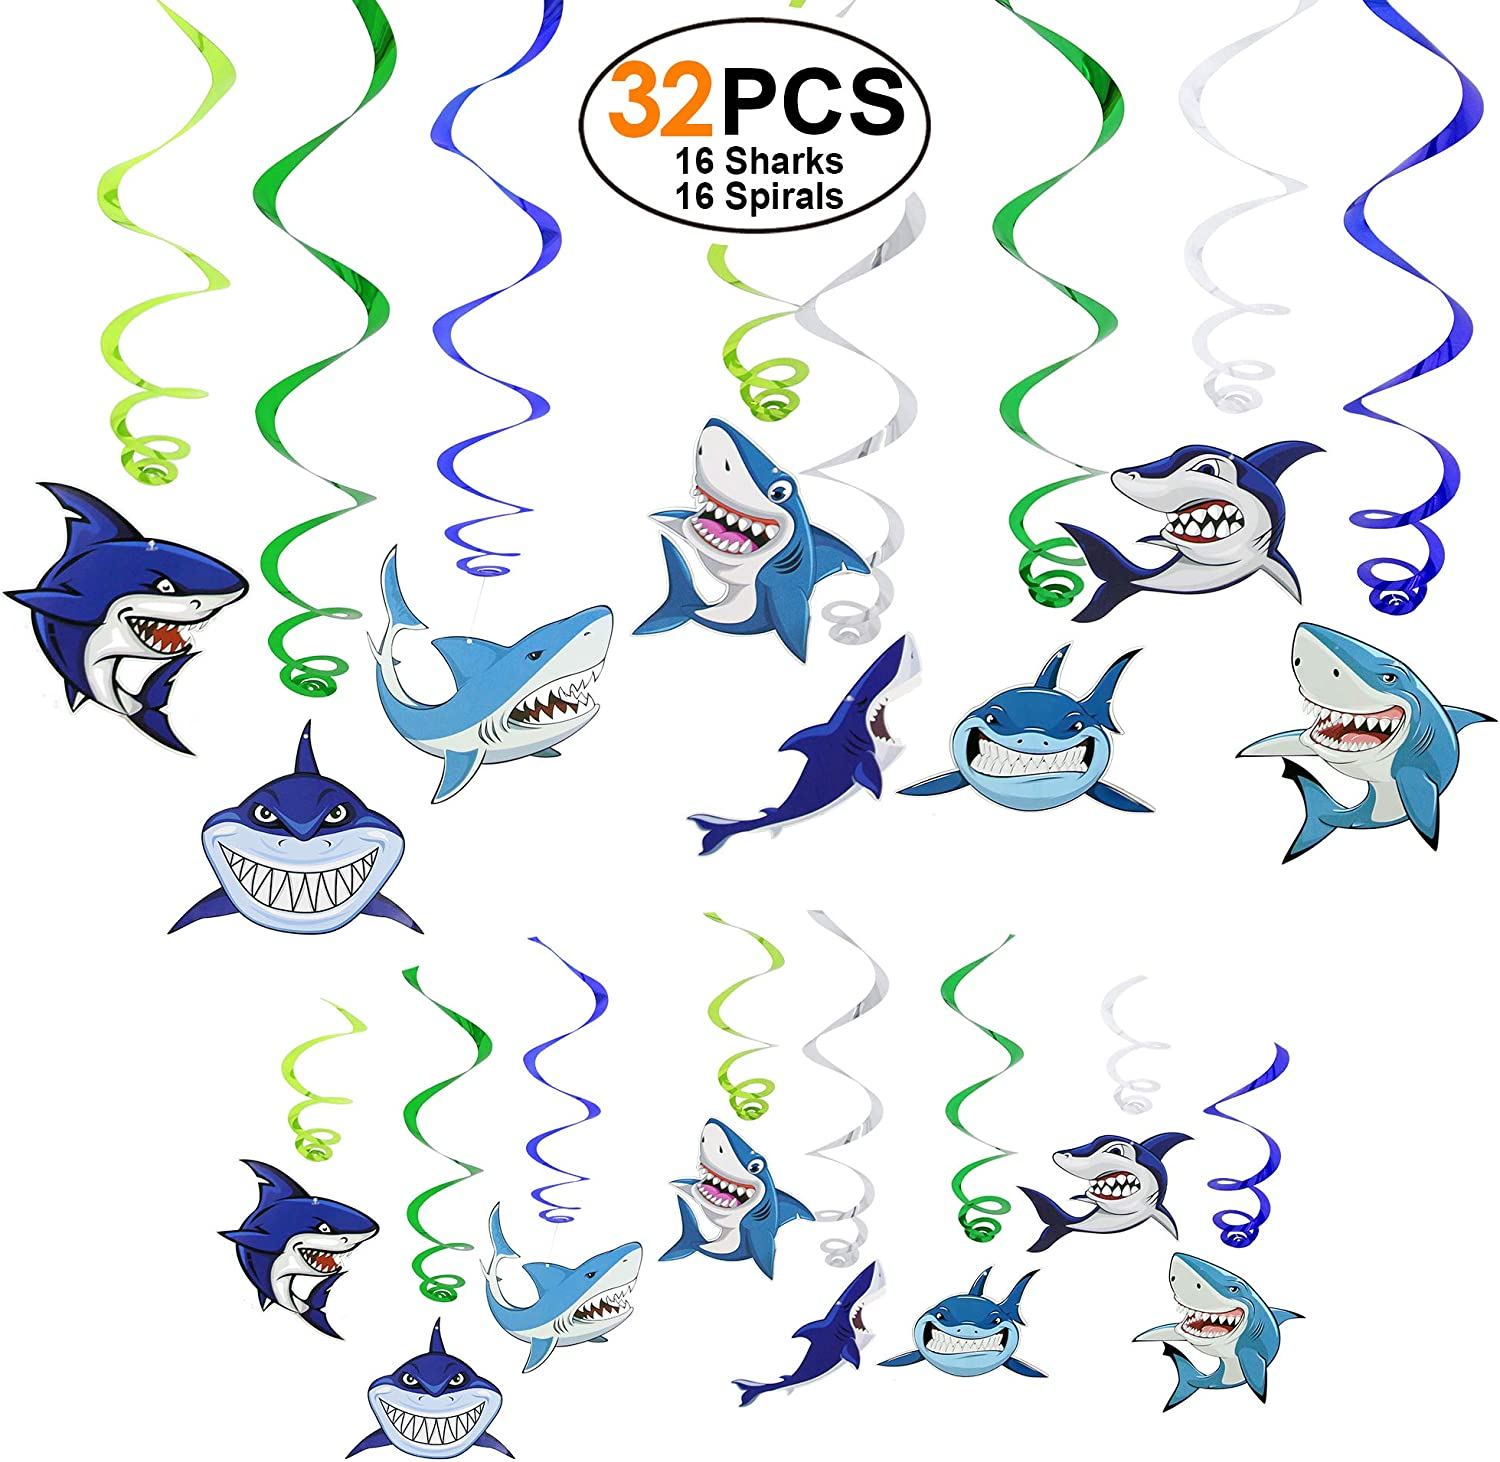 Shark Birthday Decorations Party Supplies Set of 32 Hanging Swirls Ceiling Ornaments Party Favors Streamers Decor for Baby Shower Party Ocean Under the Sea Party